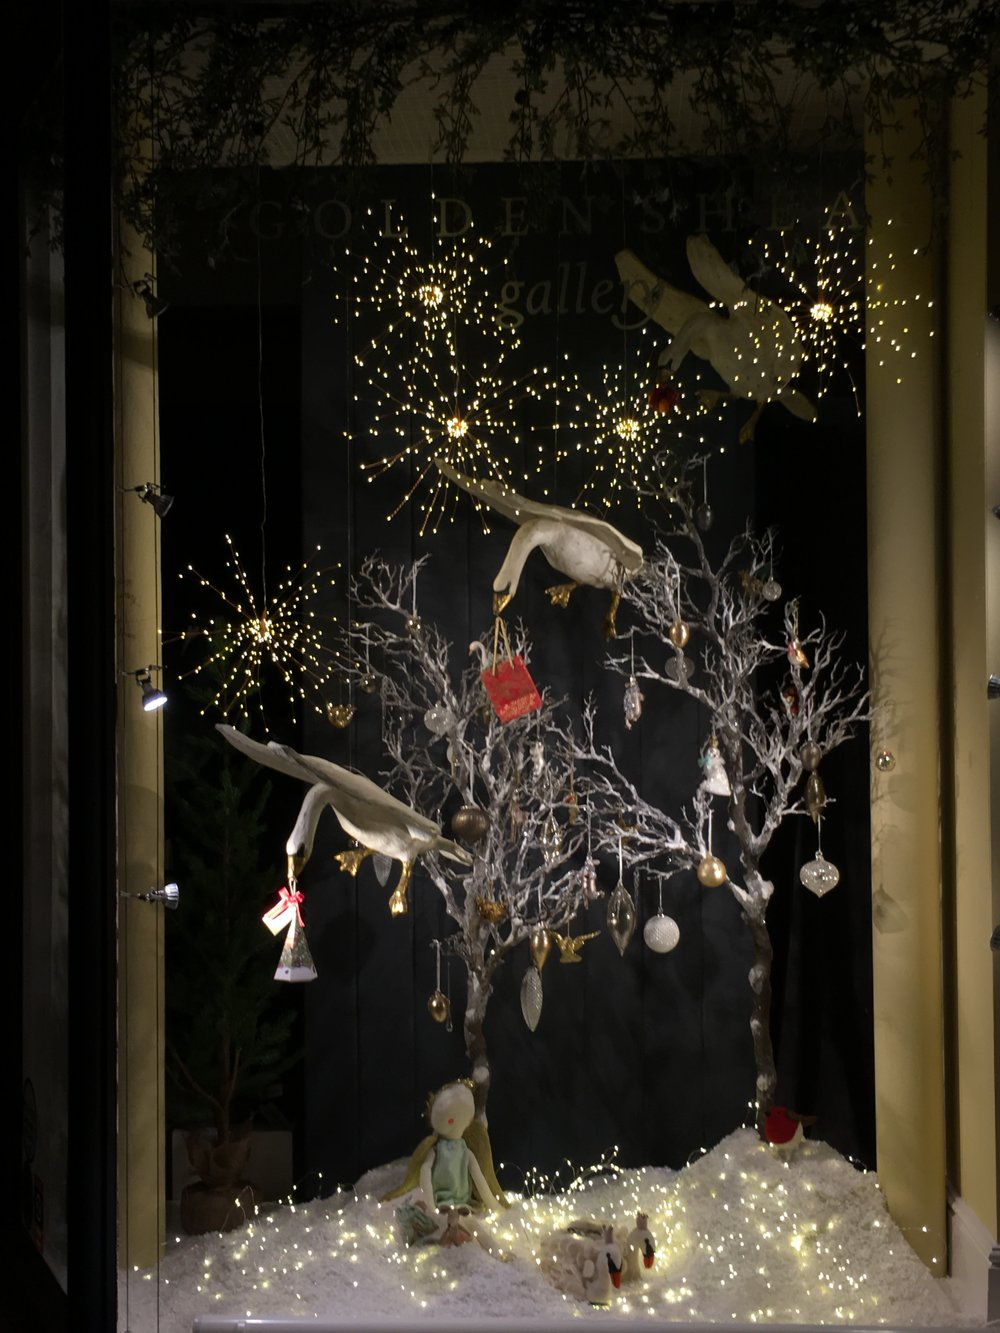 Golden+Sheaf+Gallery+Narberth+Christmas+window+display.JPG